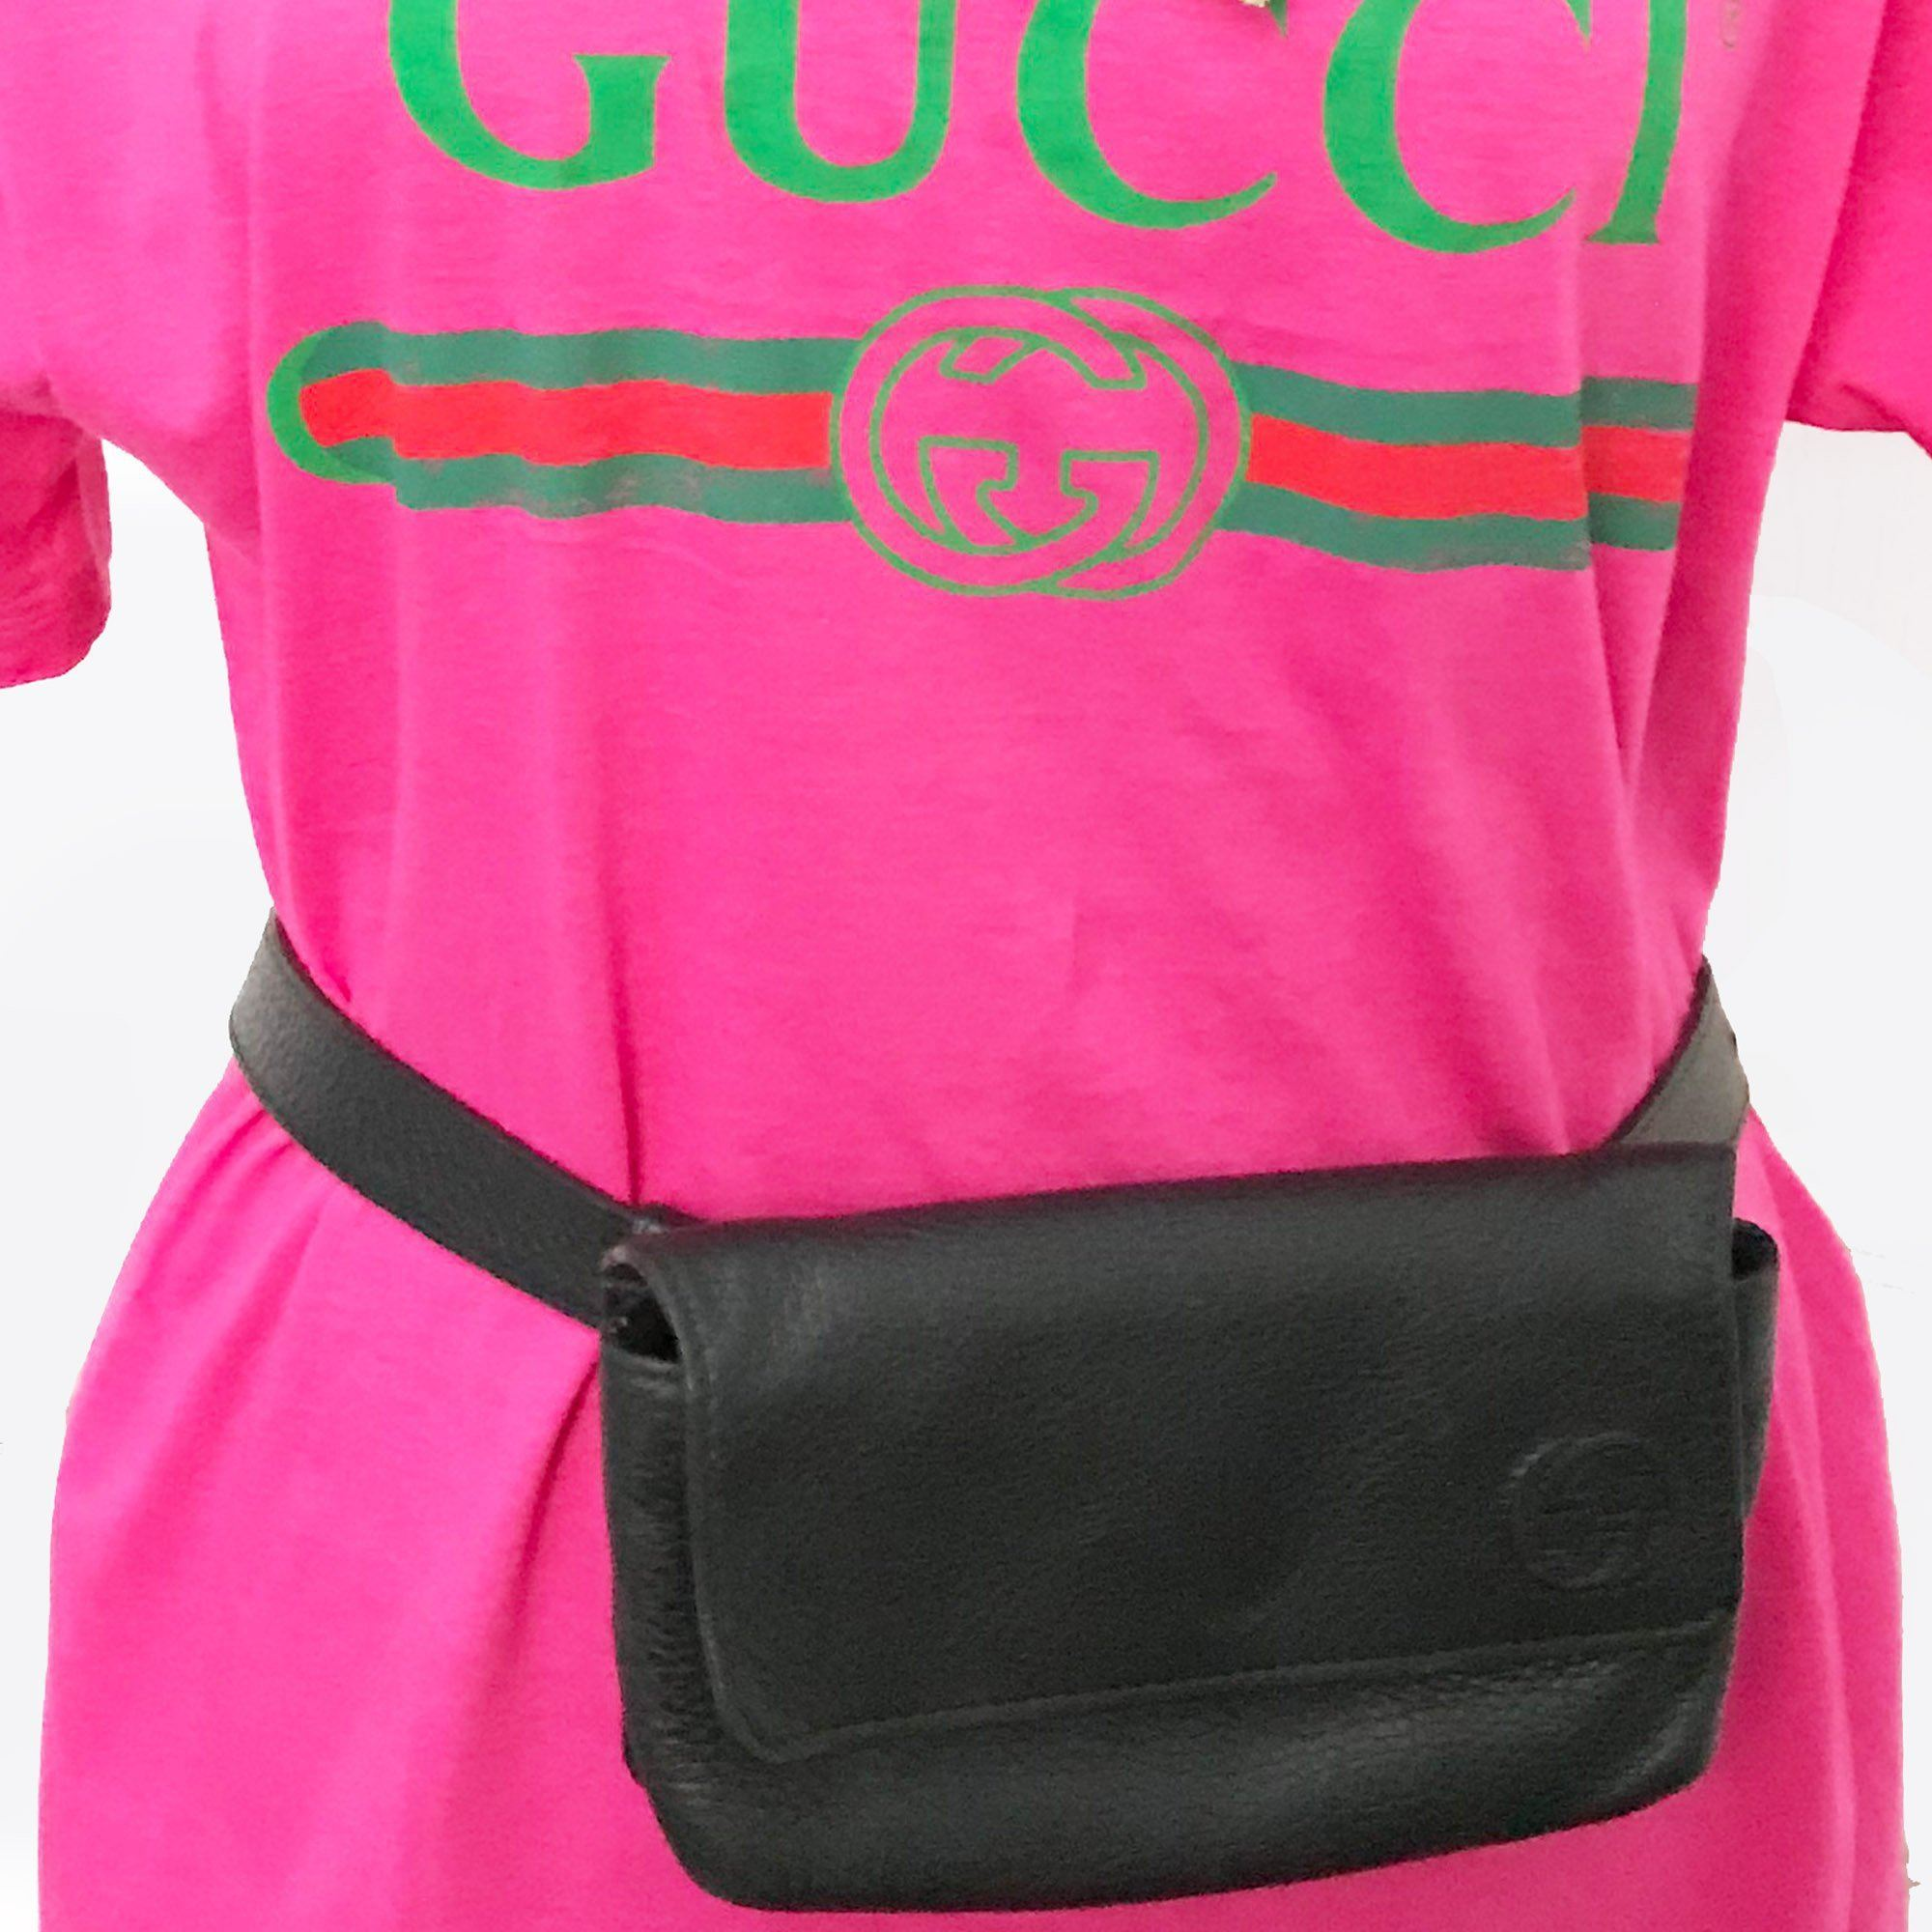 Gucci Flap Leather Belt Bag